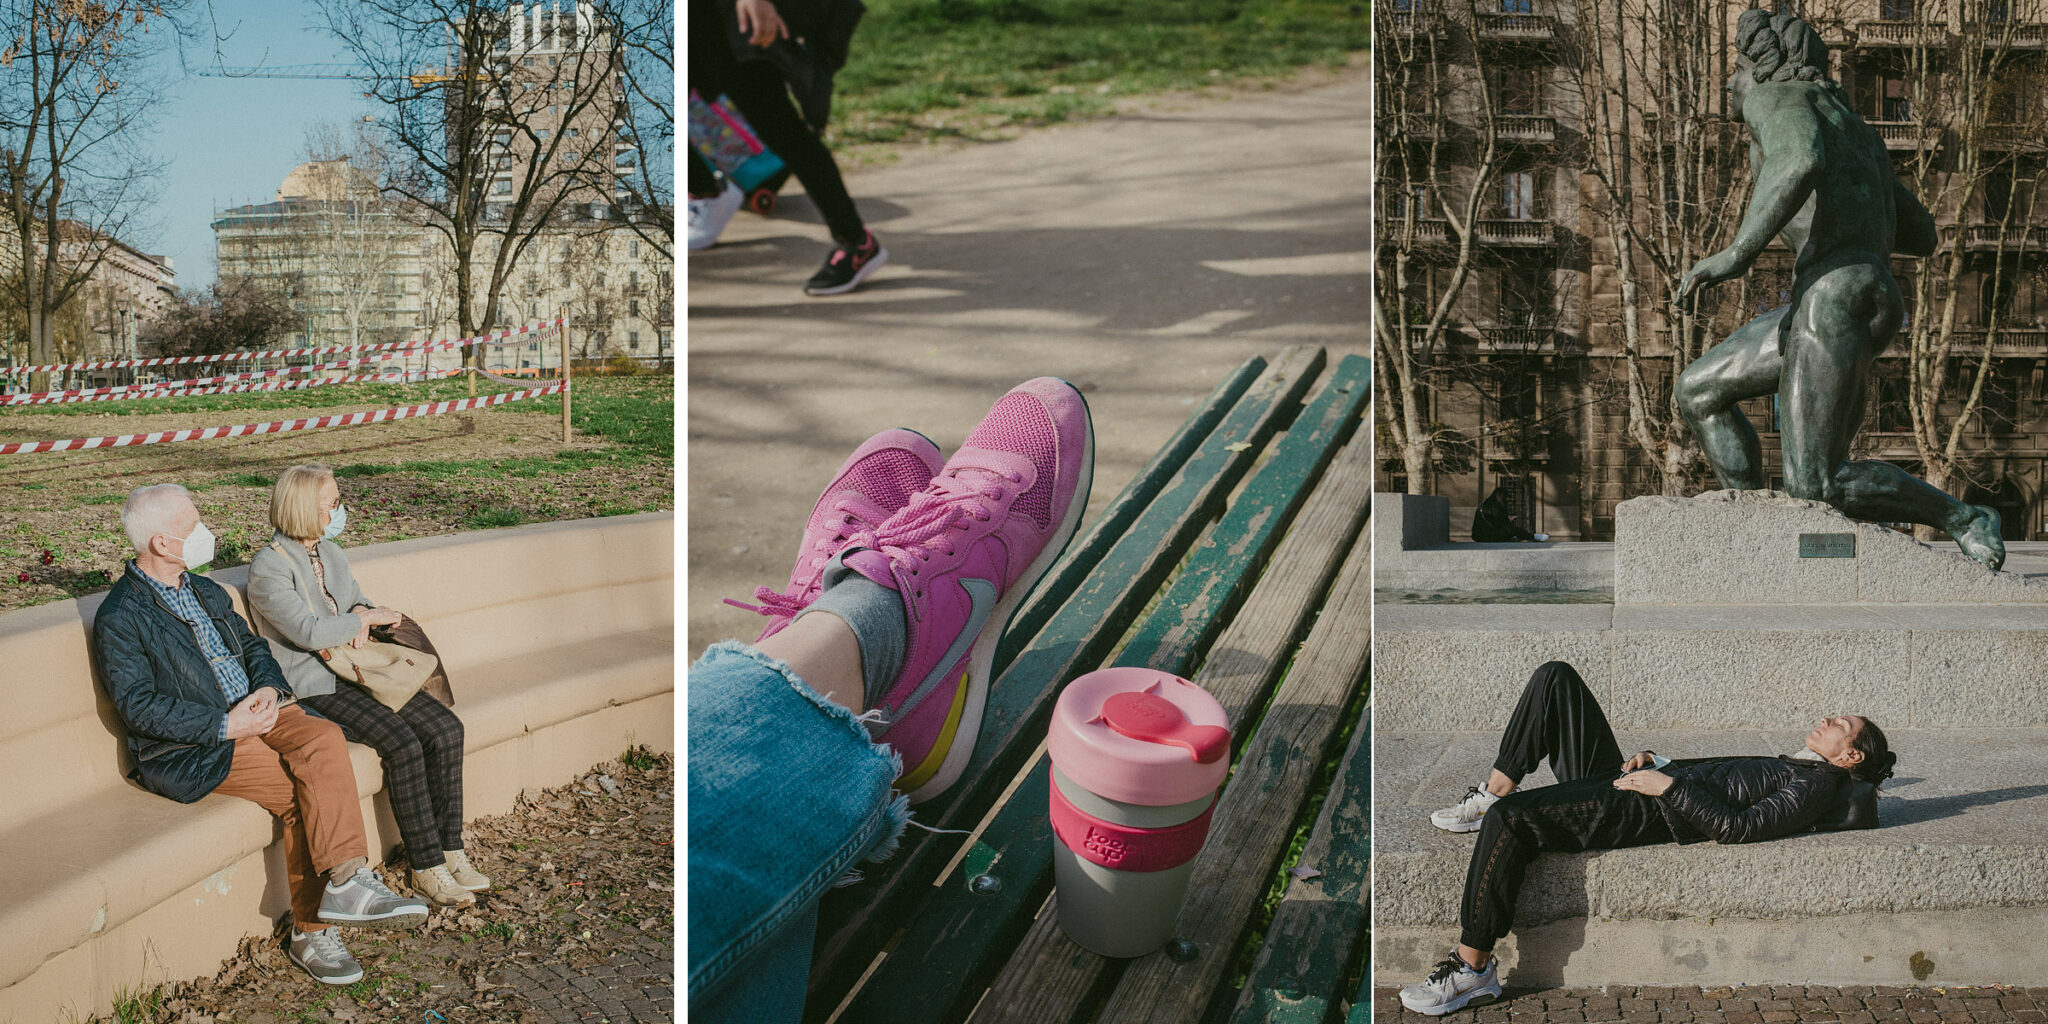 A couple sat on the Vittorio Formentano Park in Milan, a girl relaxes beneath the sun near a big Statue, someone drinks from a Keep Cup mug on a bench